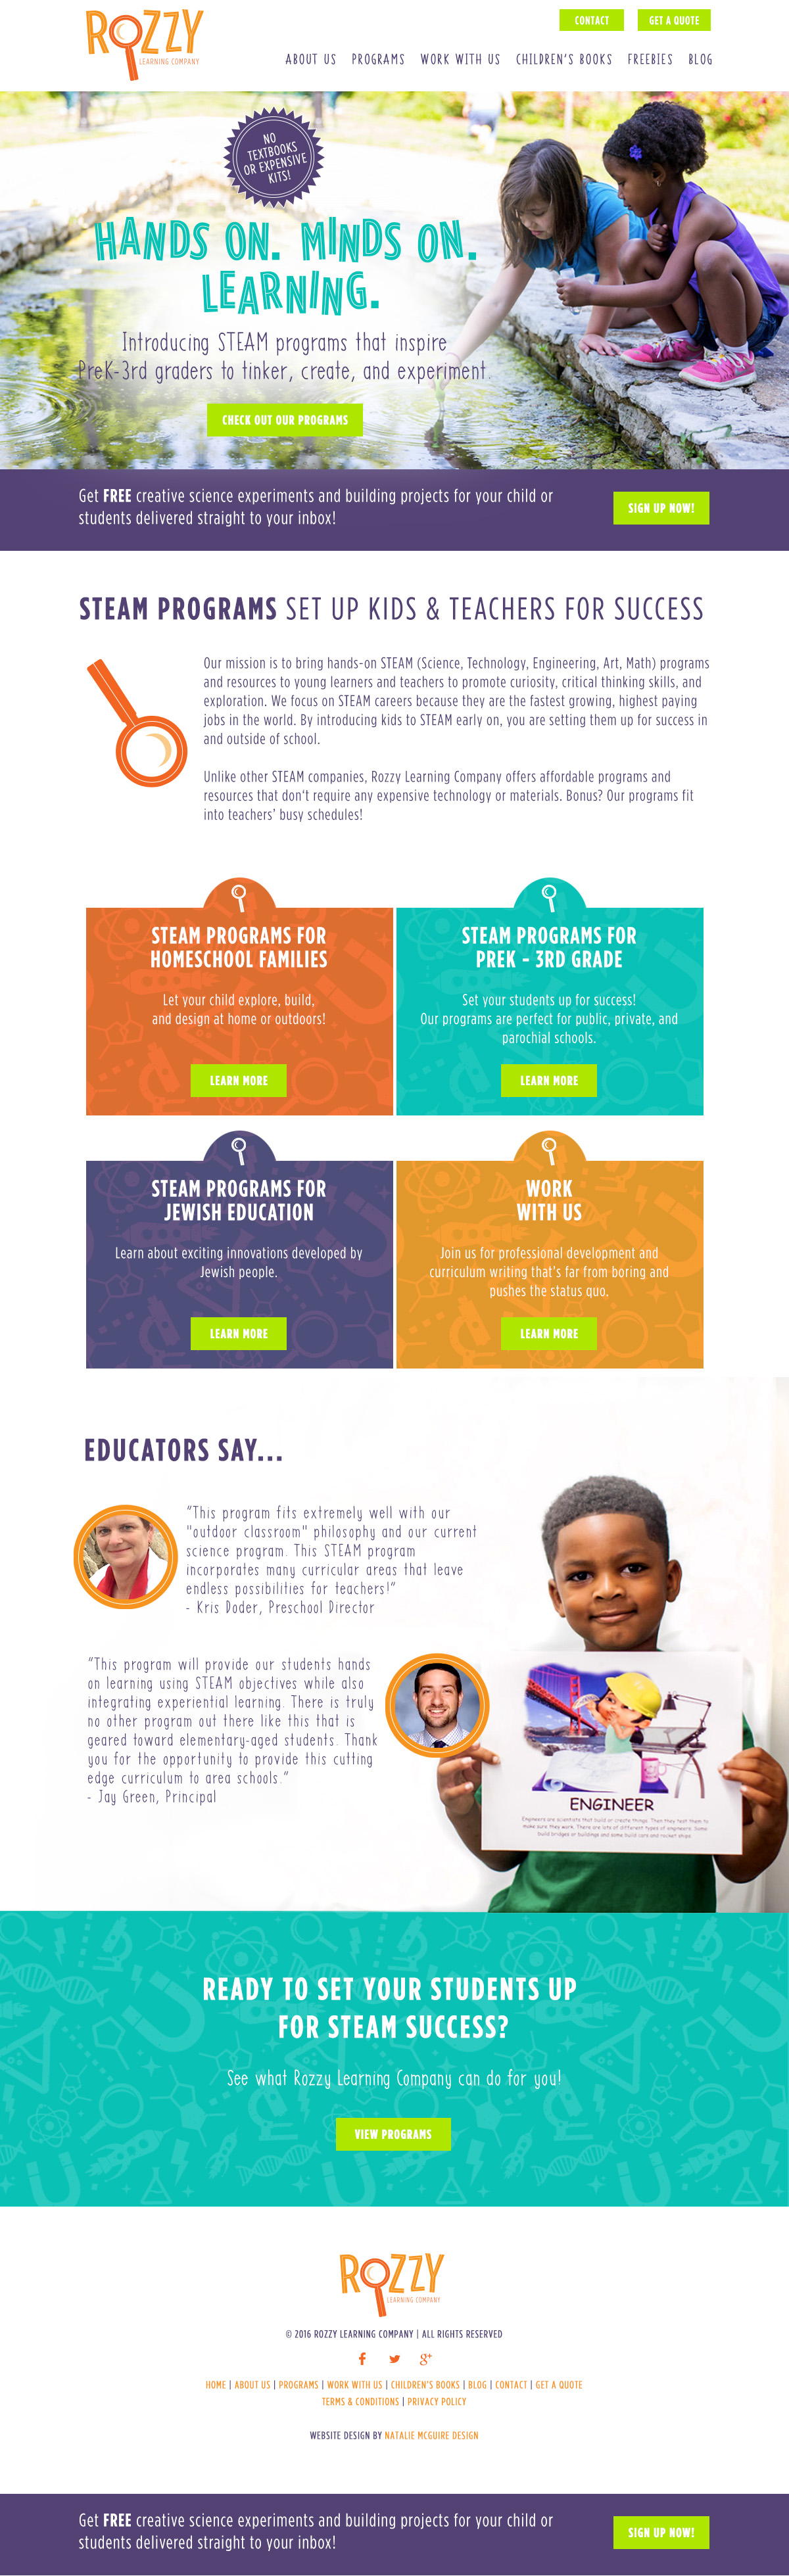 Rozzy Learning Company, a STEAM program for PreK 3rd